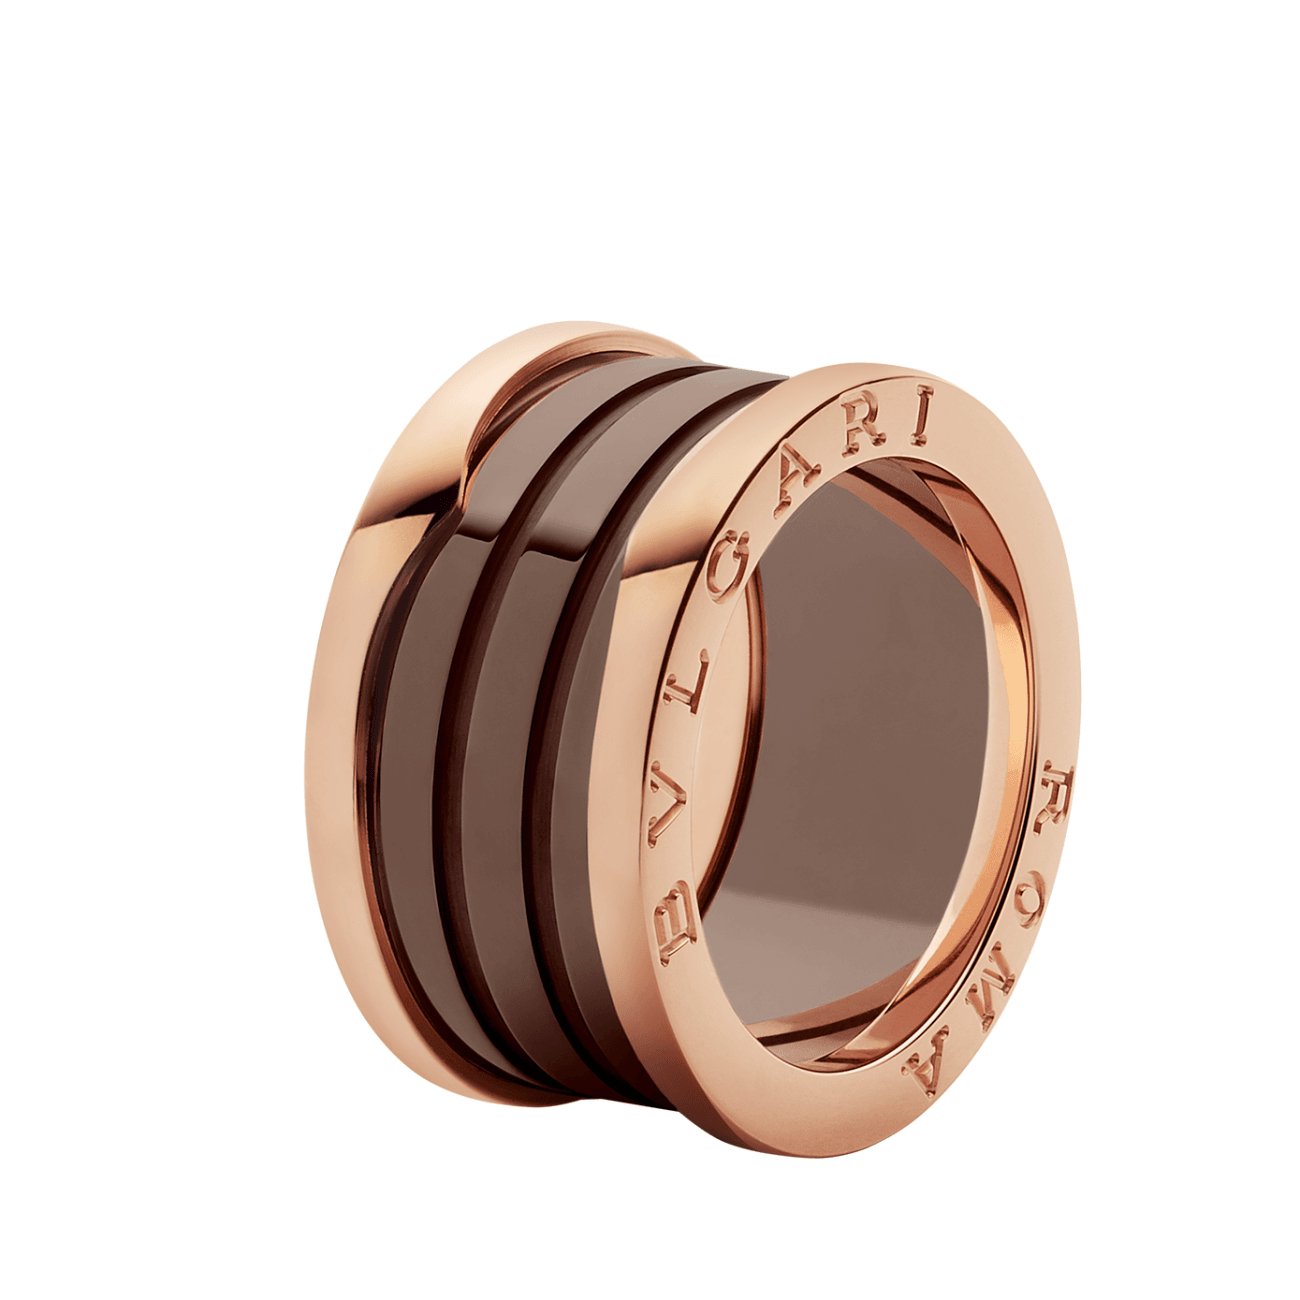 BVLGARI Jewelry - B.ZERO1 RING 349203 | Manfredi Jewels